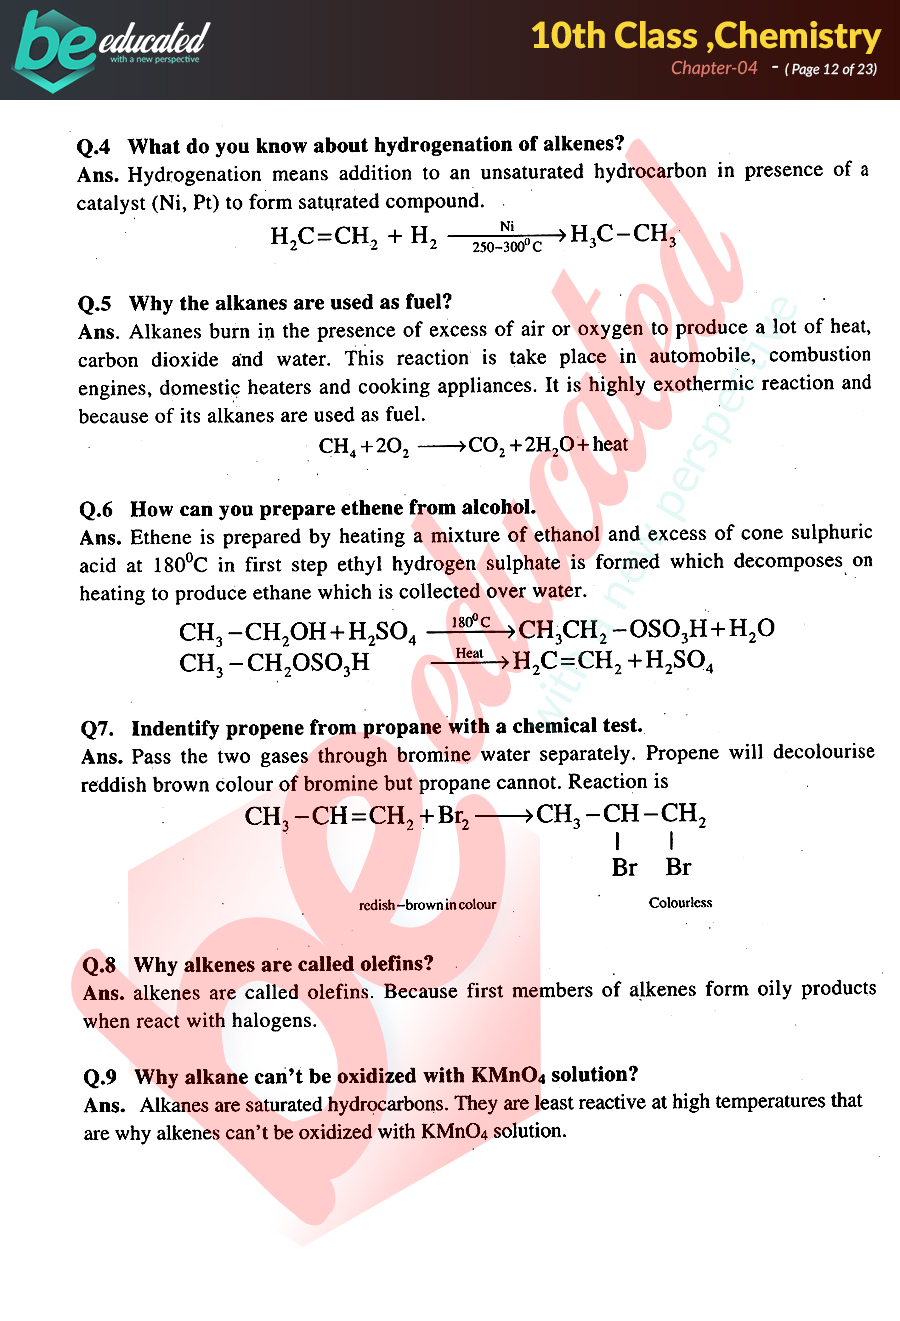 Chapter 4 Chemistry 10th Class Notes - Matric Part 2 Notes